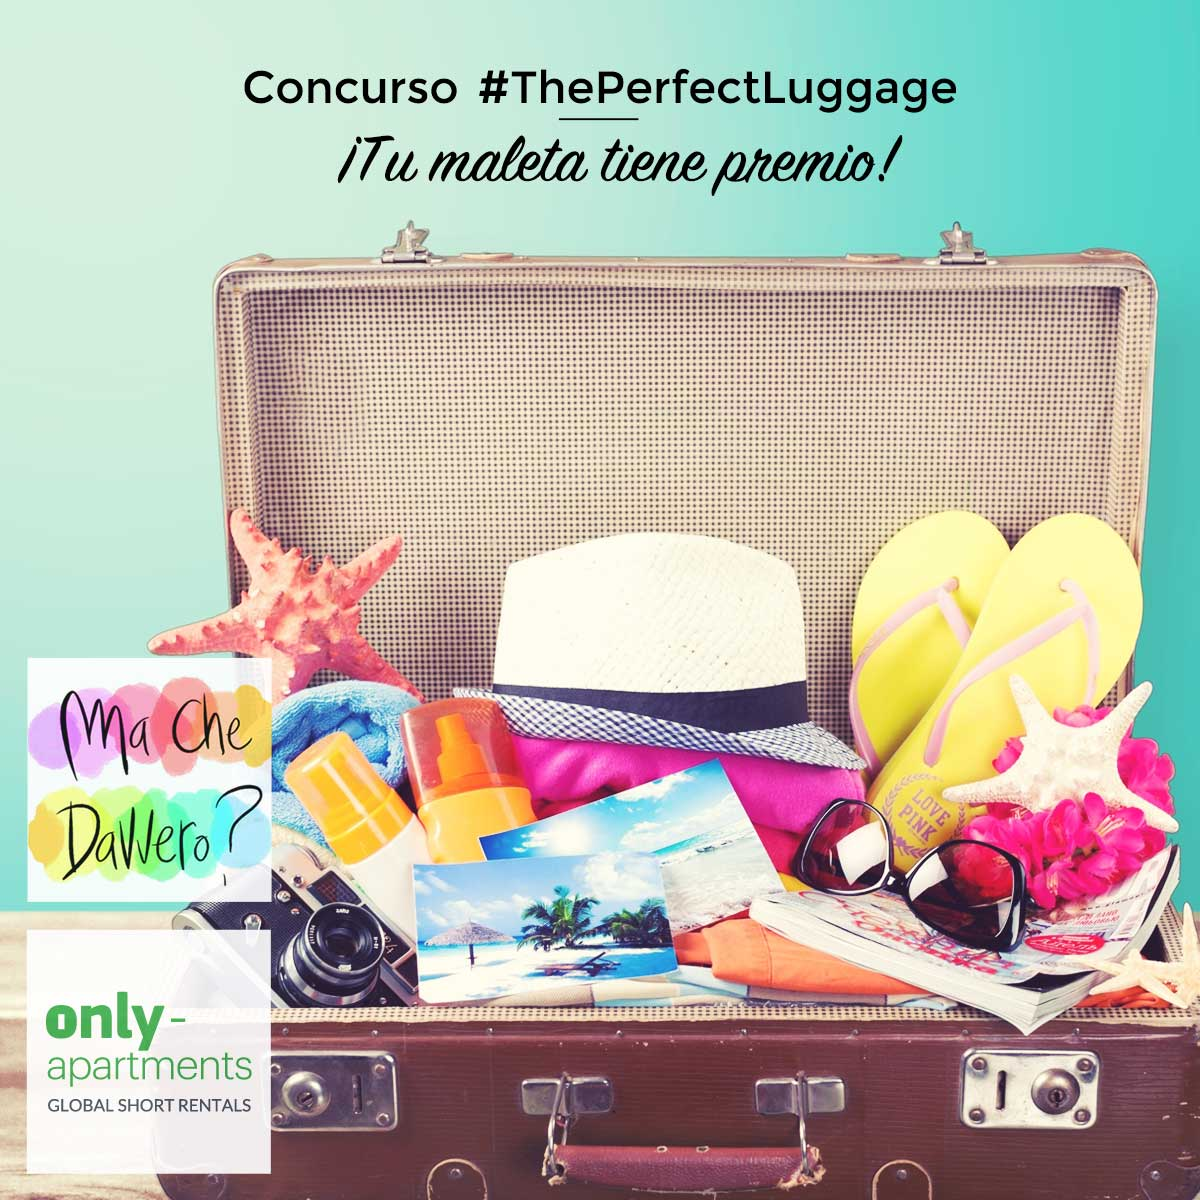 #ThePerfectLuggage Contest